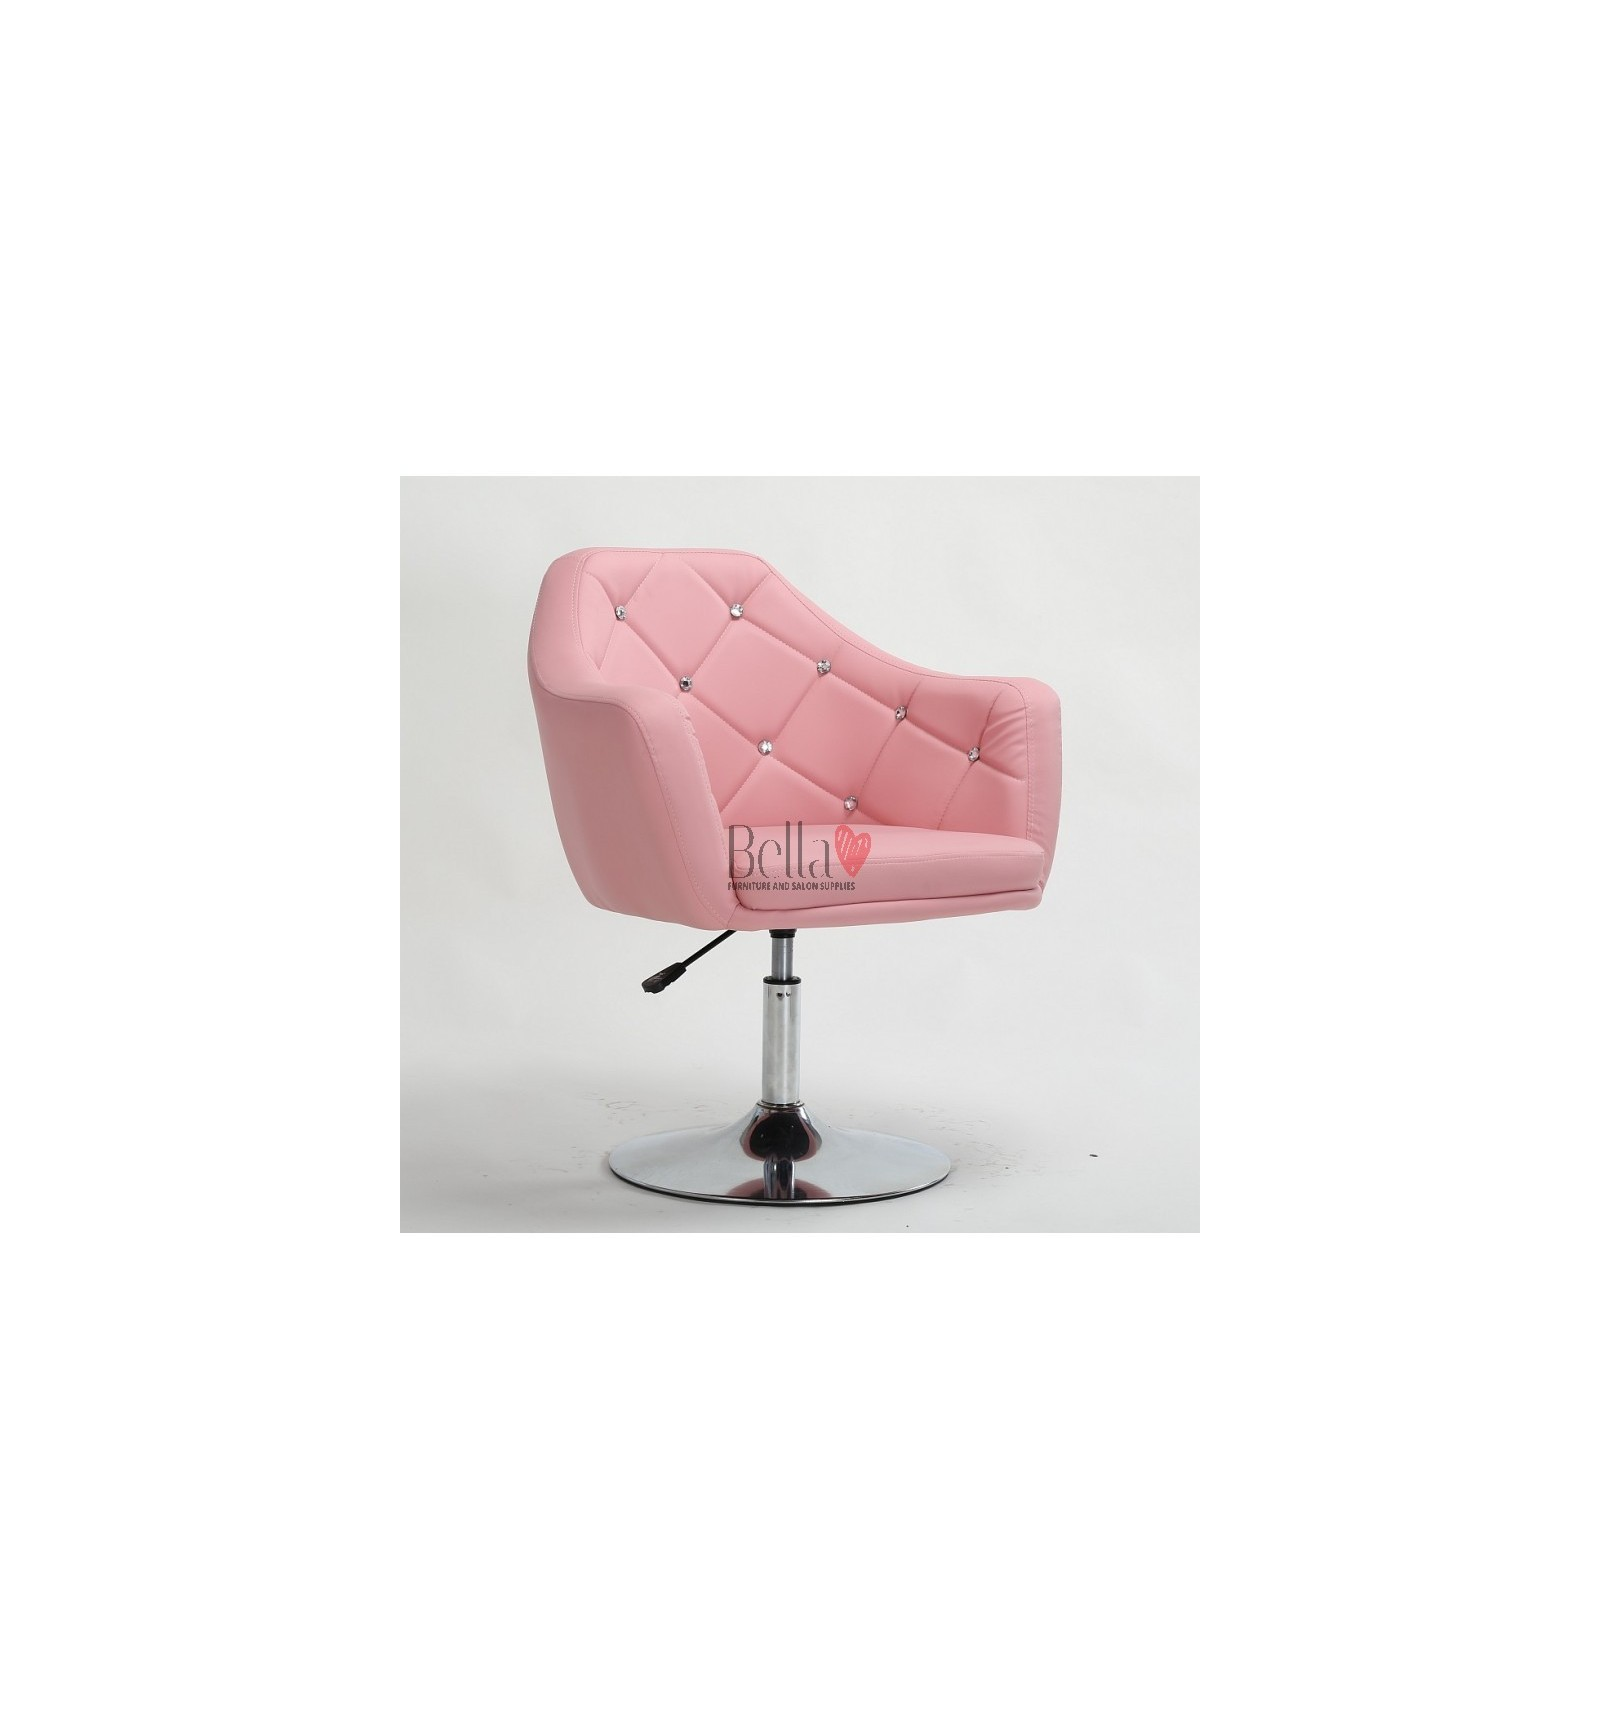 pink nail salon chairs best office chair for hemorrhoids 2018 stylish salons dublin